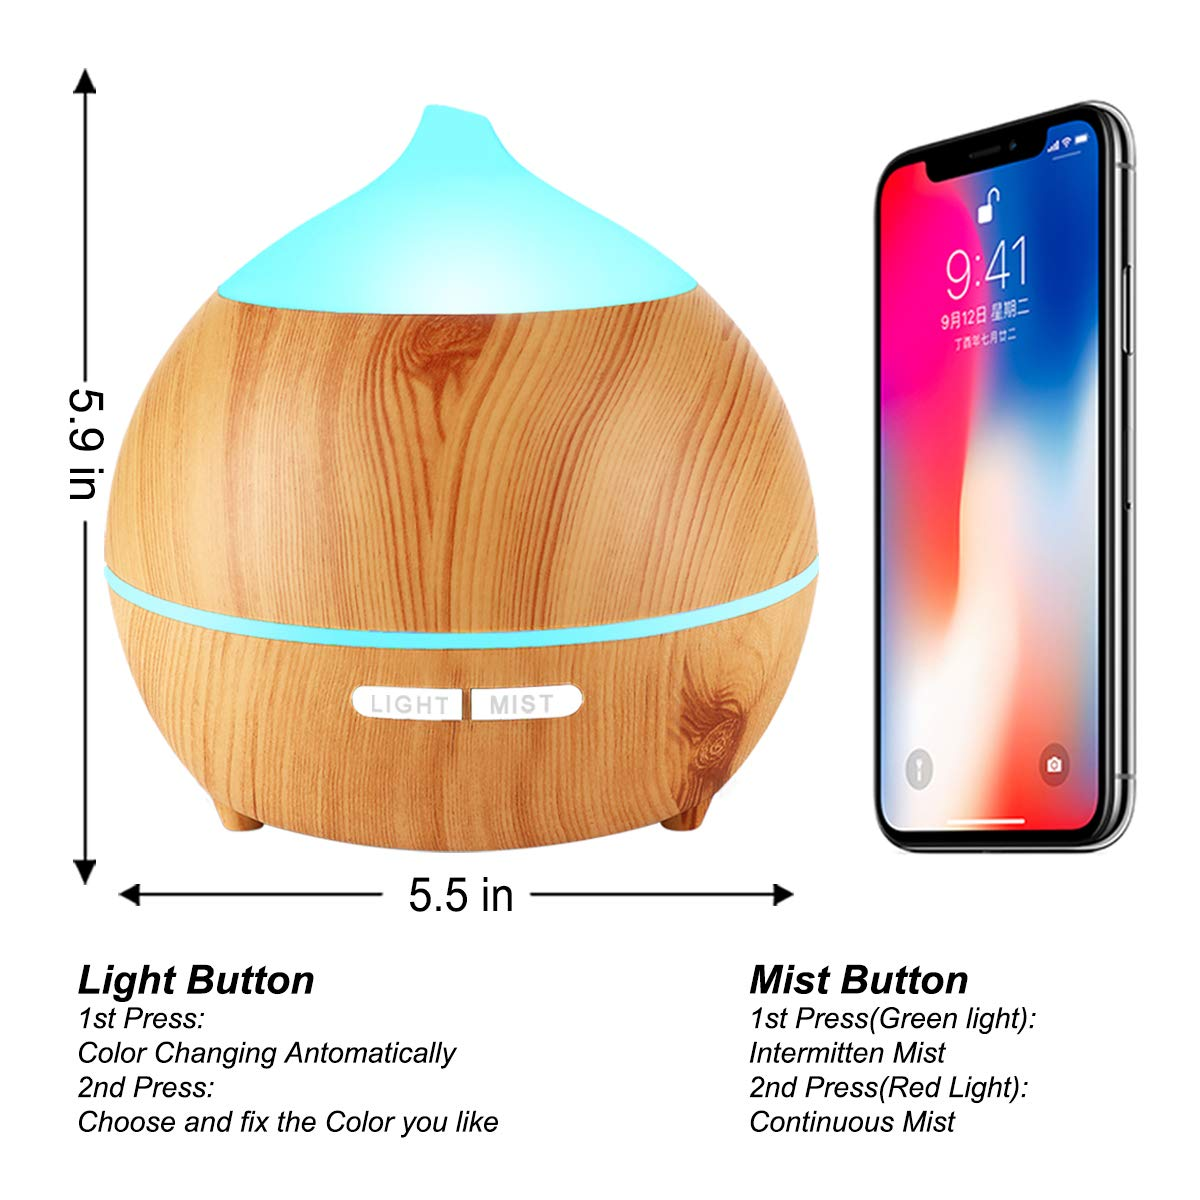 Essential Oil Diffuser XFelectronics 2 pack 250ml Diffusers for Essential Oils Wood Grain Aromatherapy Diffuser Ultrasonic Humidifier with Waterless Auto Shut off, 7 Colors Light for Home Office Baby by Xfelec (Image #3)